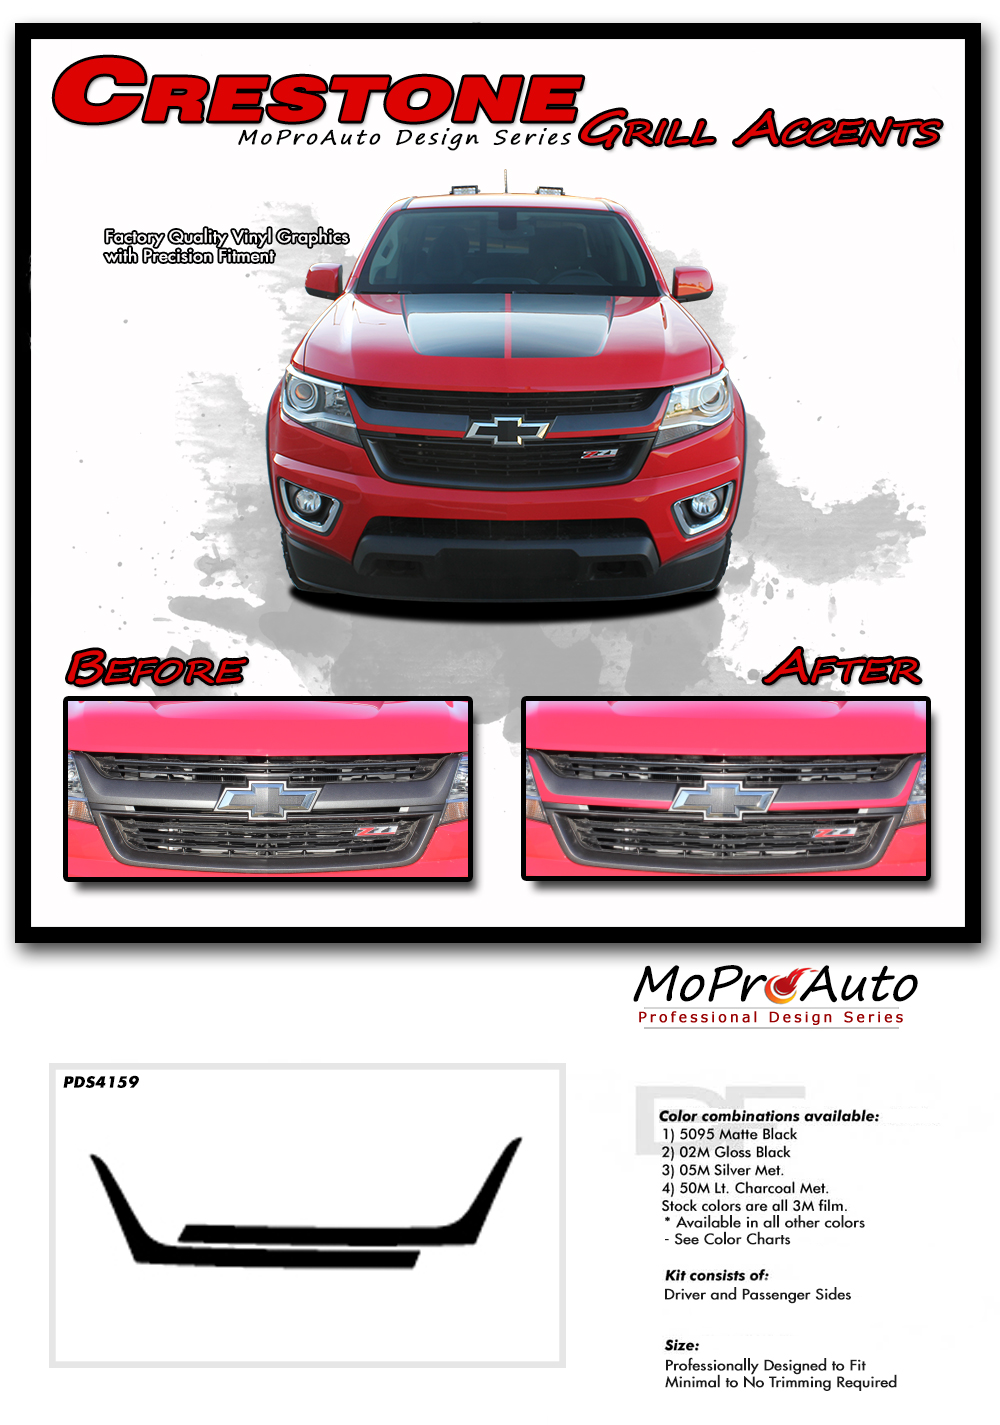 CRESTONE CHEVY COLORADO - MoProAuto Pro Design Series Vinyl Graphics, Stripes and Decals Kit